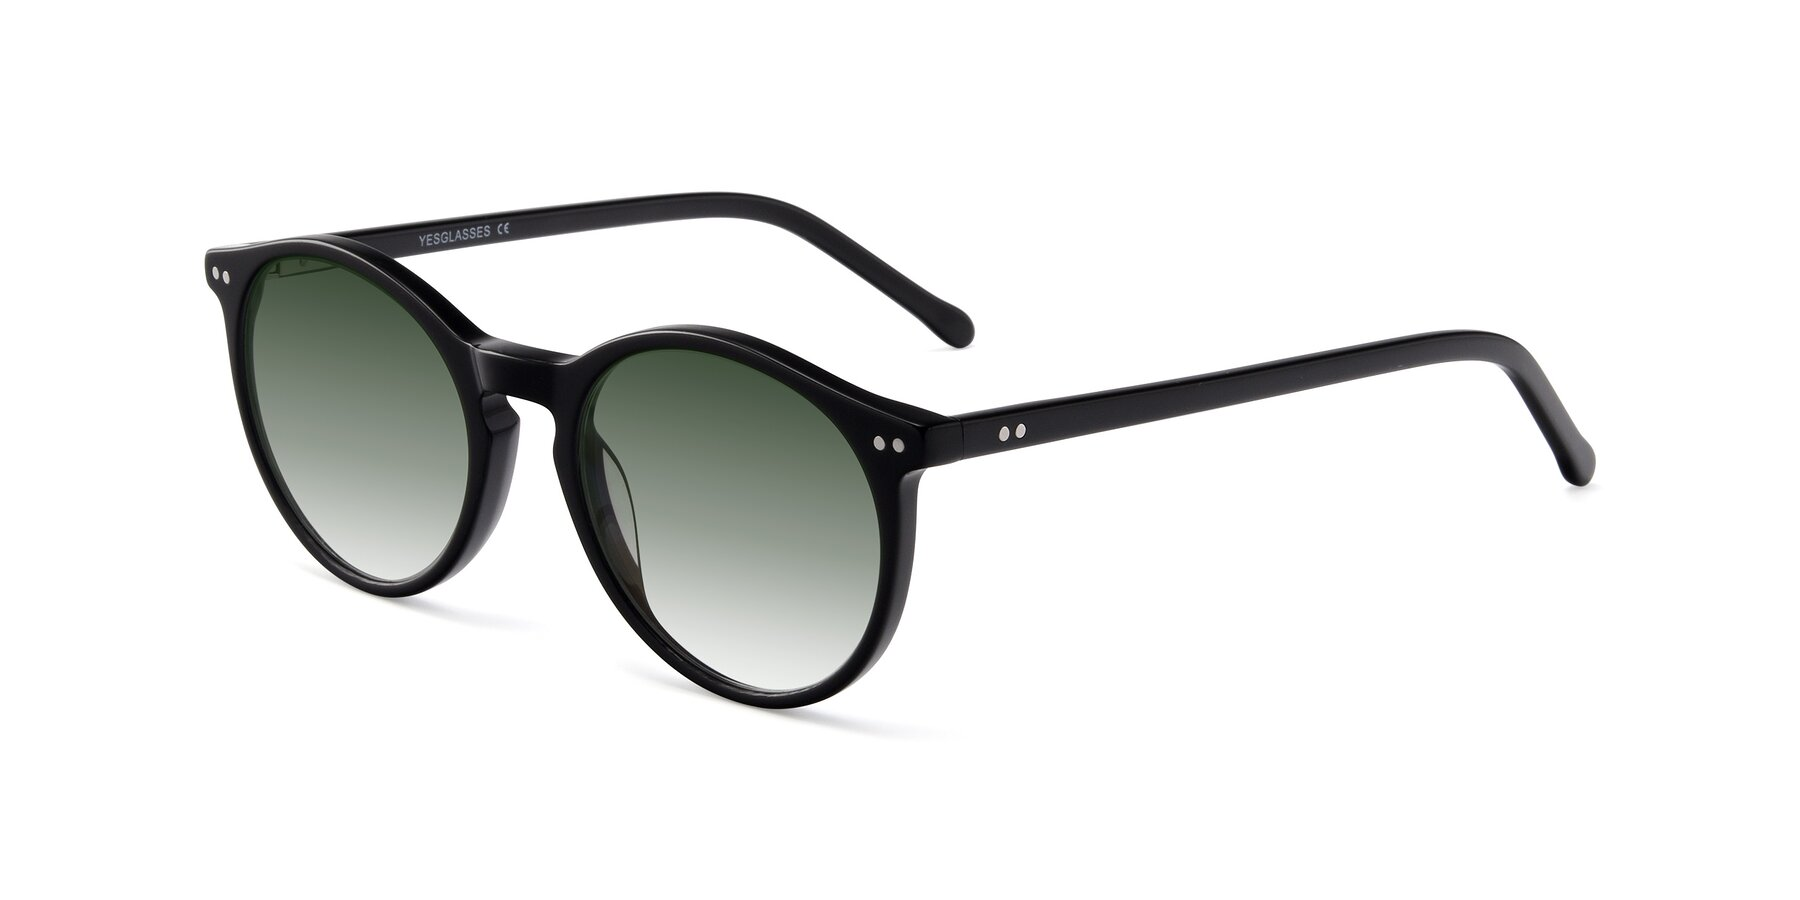 Angle of JS9026A in Black with Green Gradient Lenses